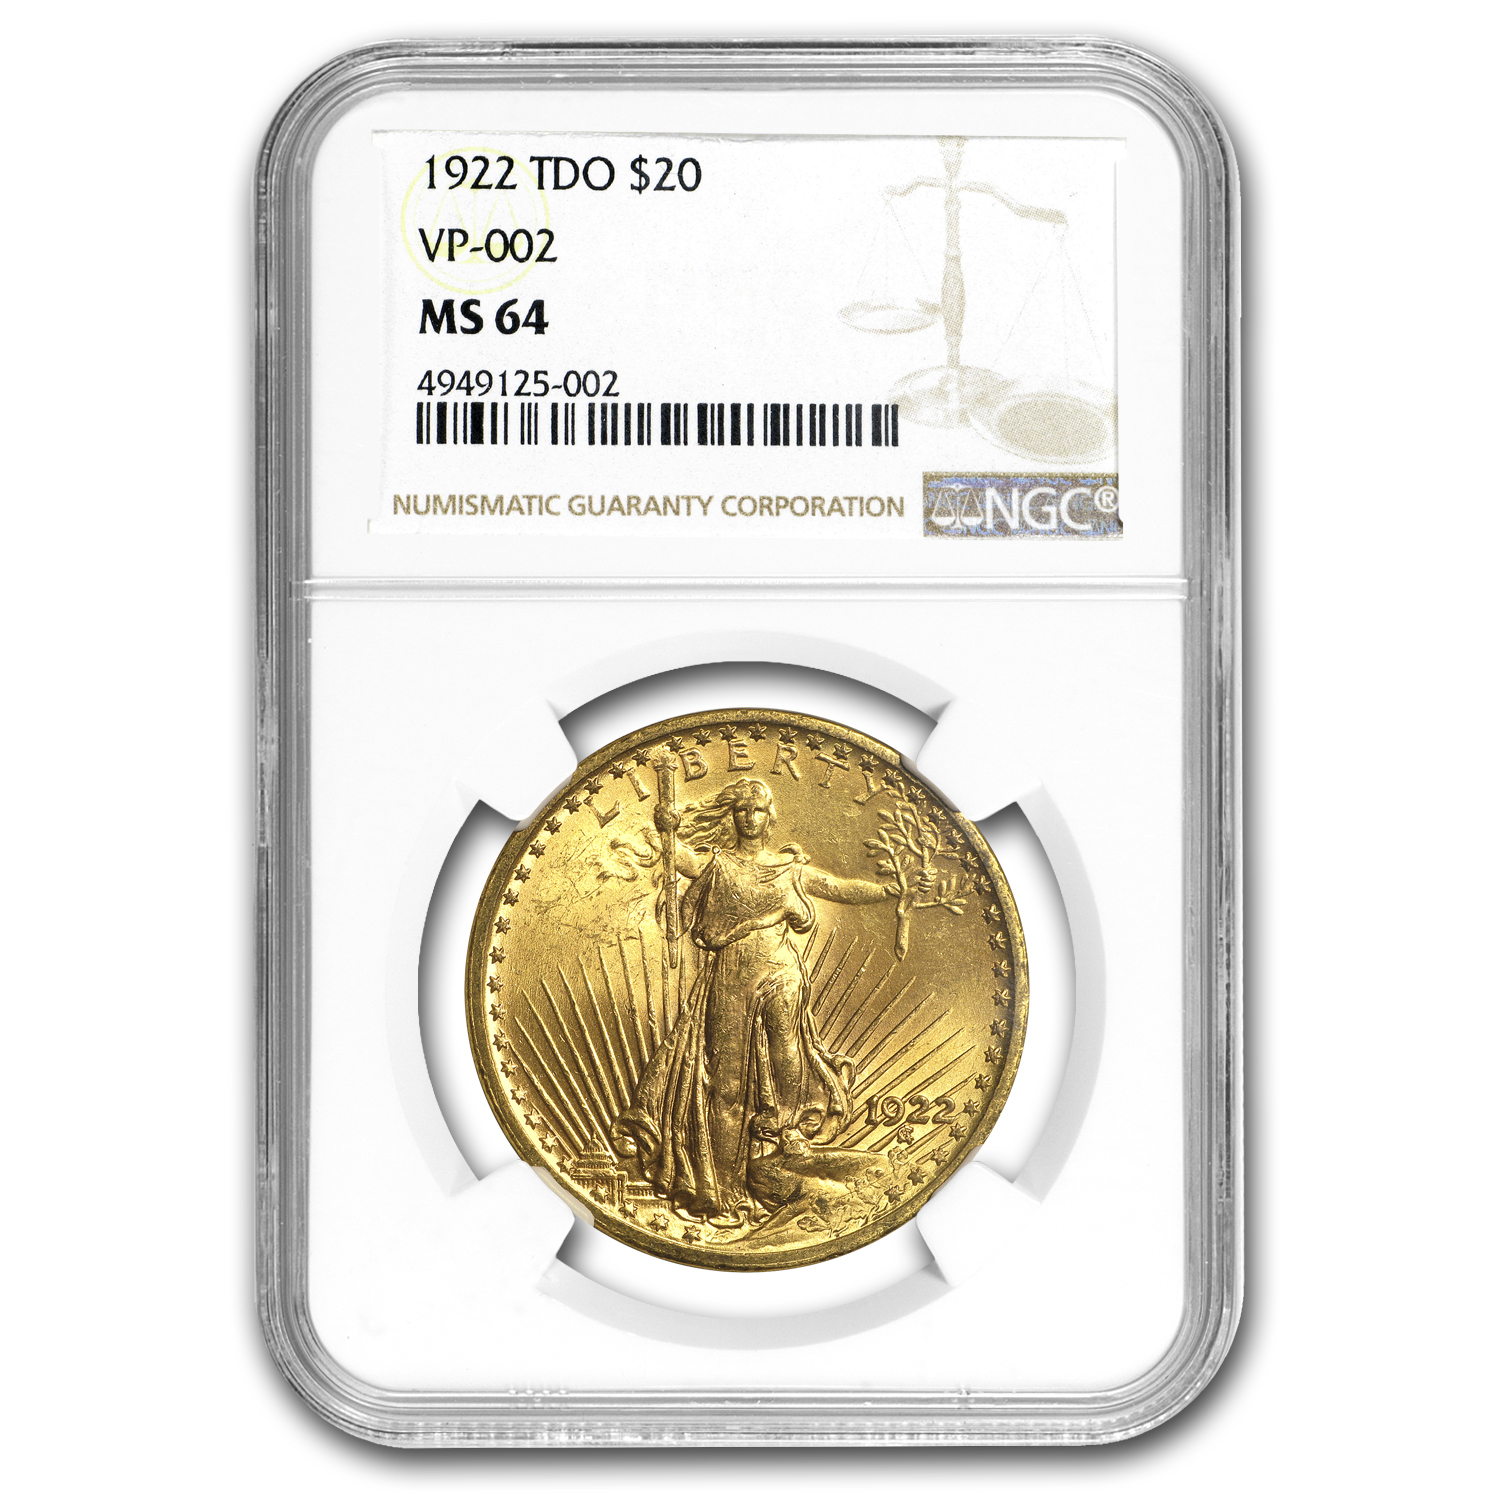 1922 $20 Saint-Gaudens Gold Double Eagle MS-64 NGC (TDO VP-002)